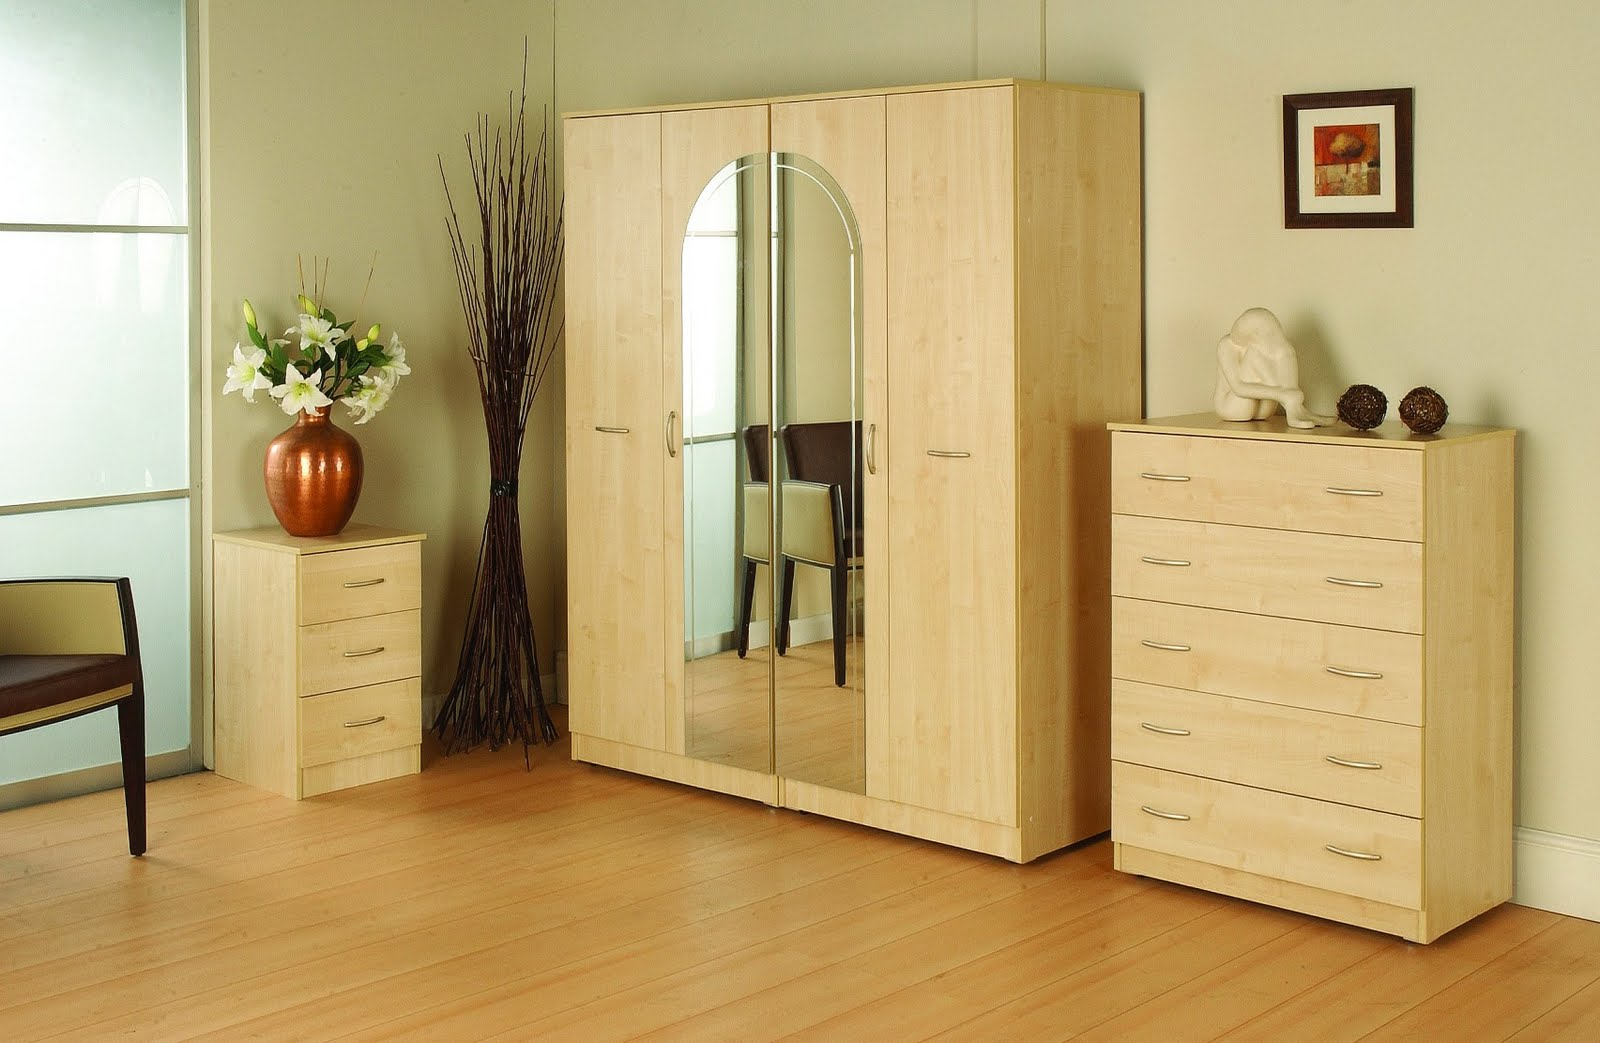 Home furnishing wardrobe designs for Bedroom cupboard designs images